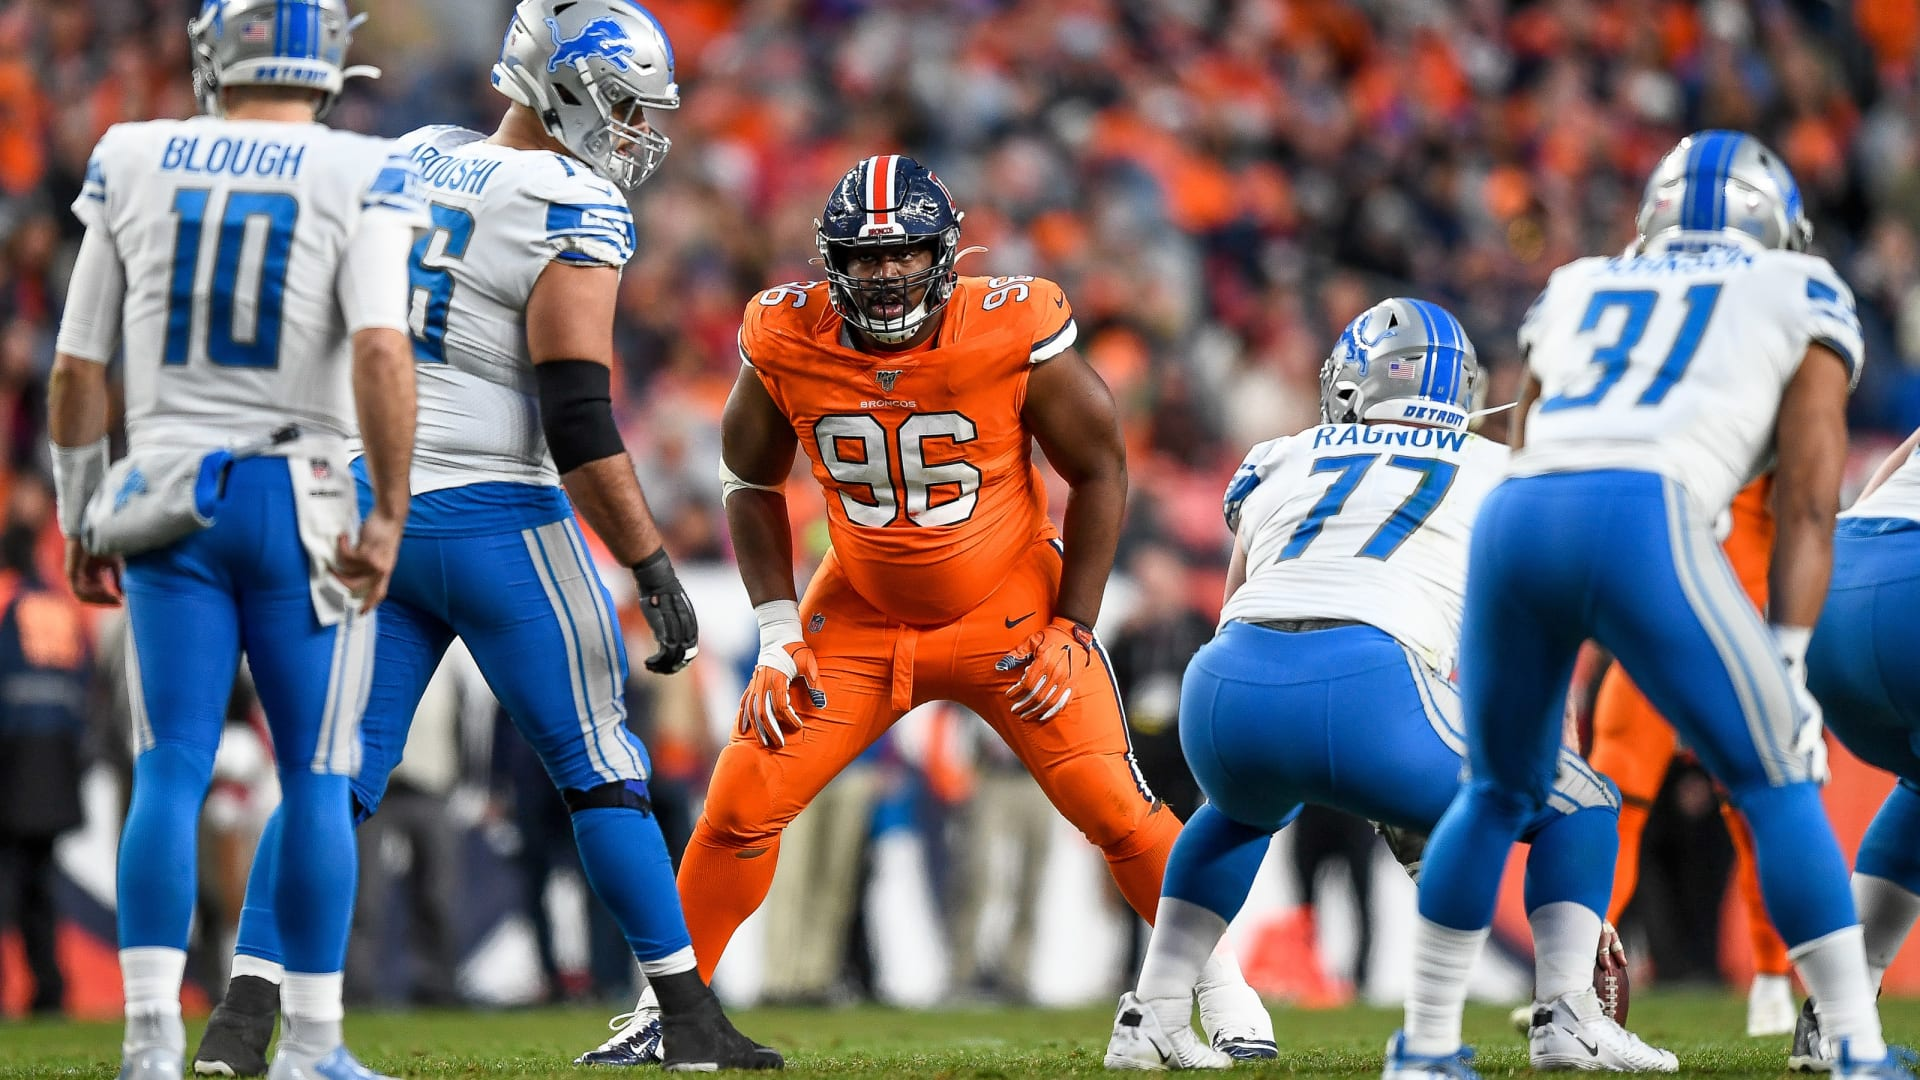 Five Broncos players who might be finished in Denver